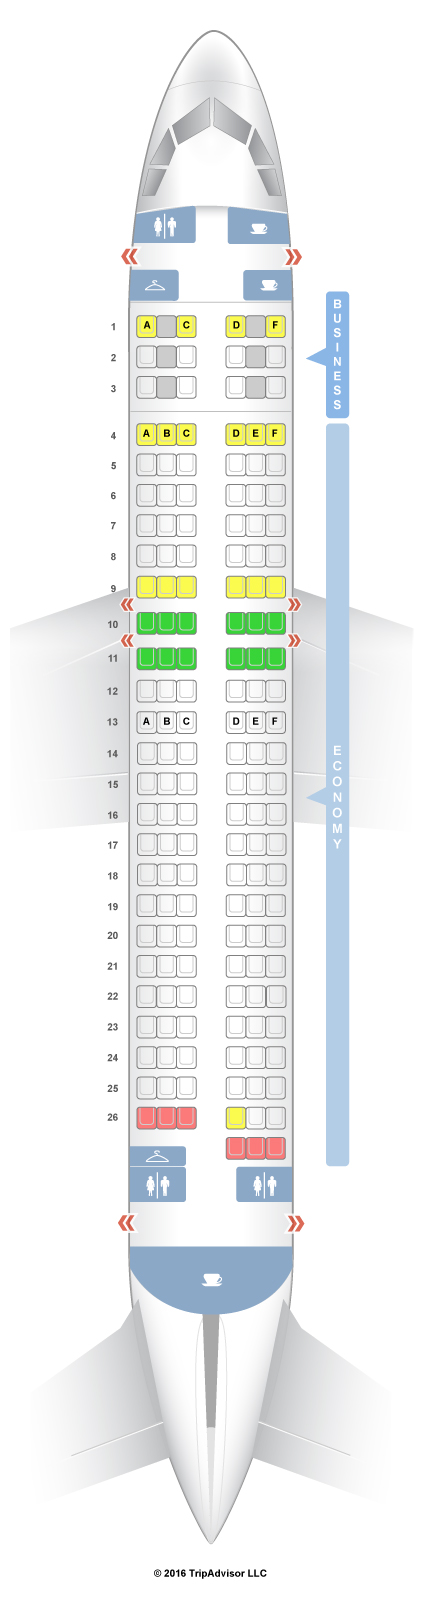 Airbus A320 Seating United Airlines United Airbus A319 Seat Map